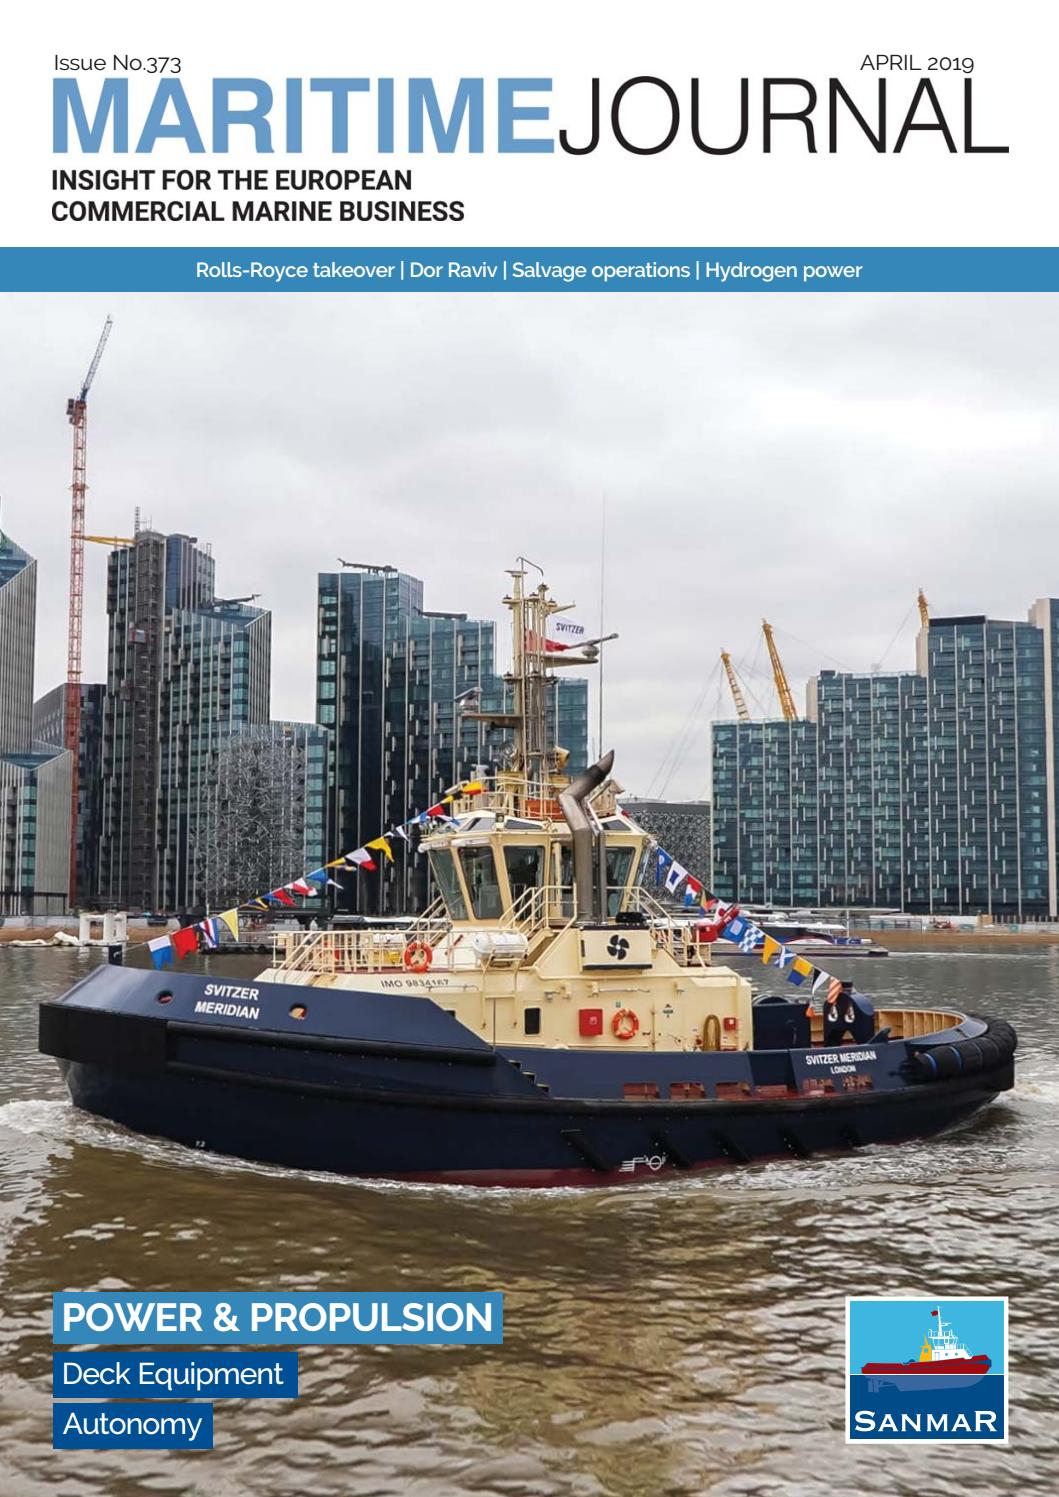 Maritime Journal April 2019 by Mercator Media - issuu